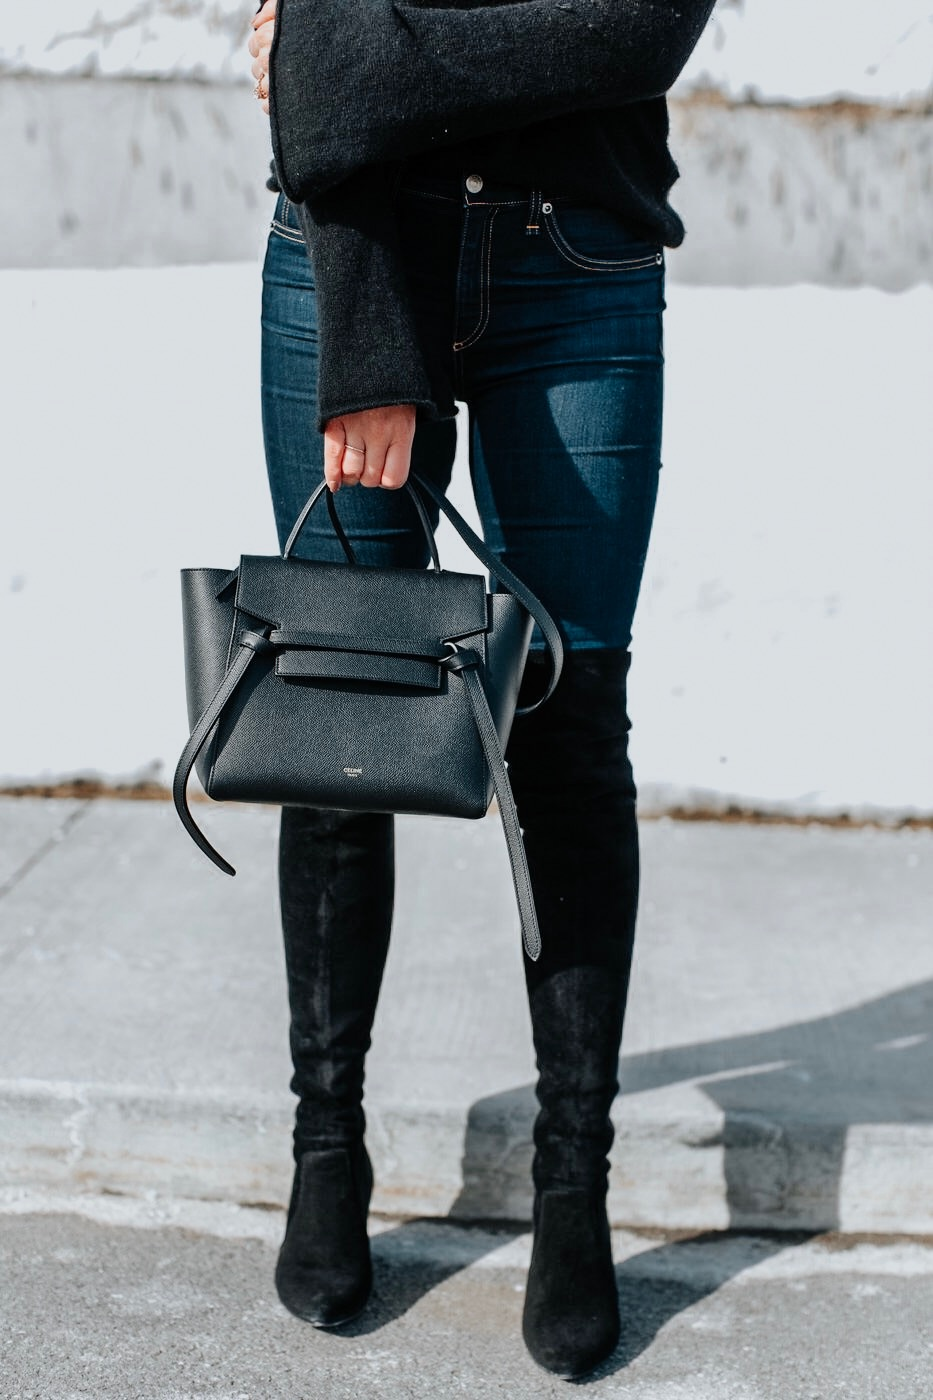 Celine Micro Belt Bag Goodnight Macaroon Over The Knee Boots Outfit Life With A Co By Amanda L Conquer